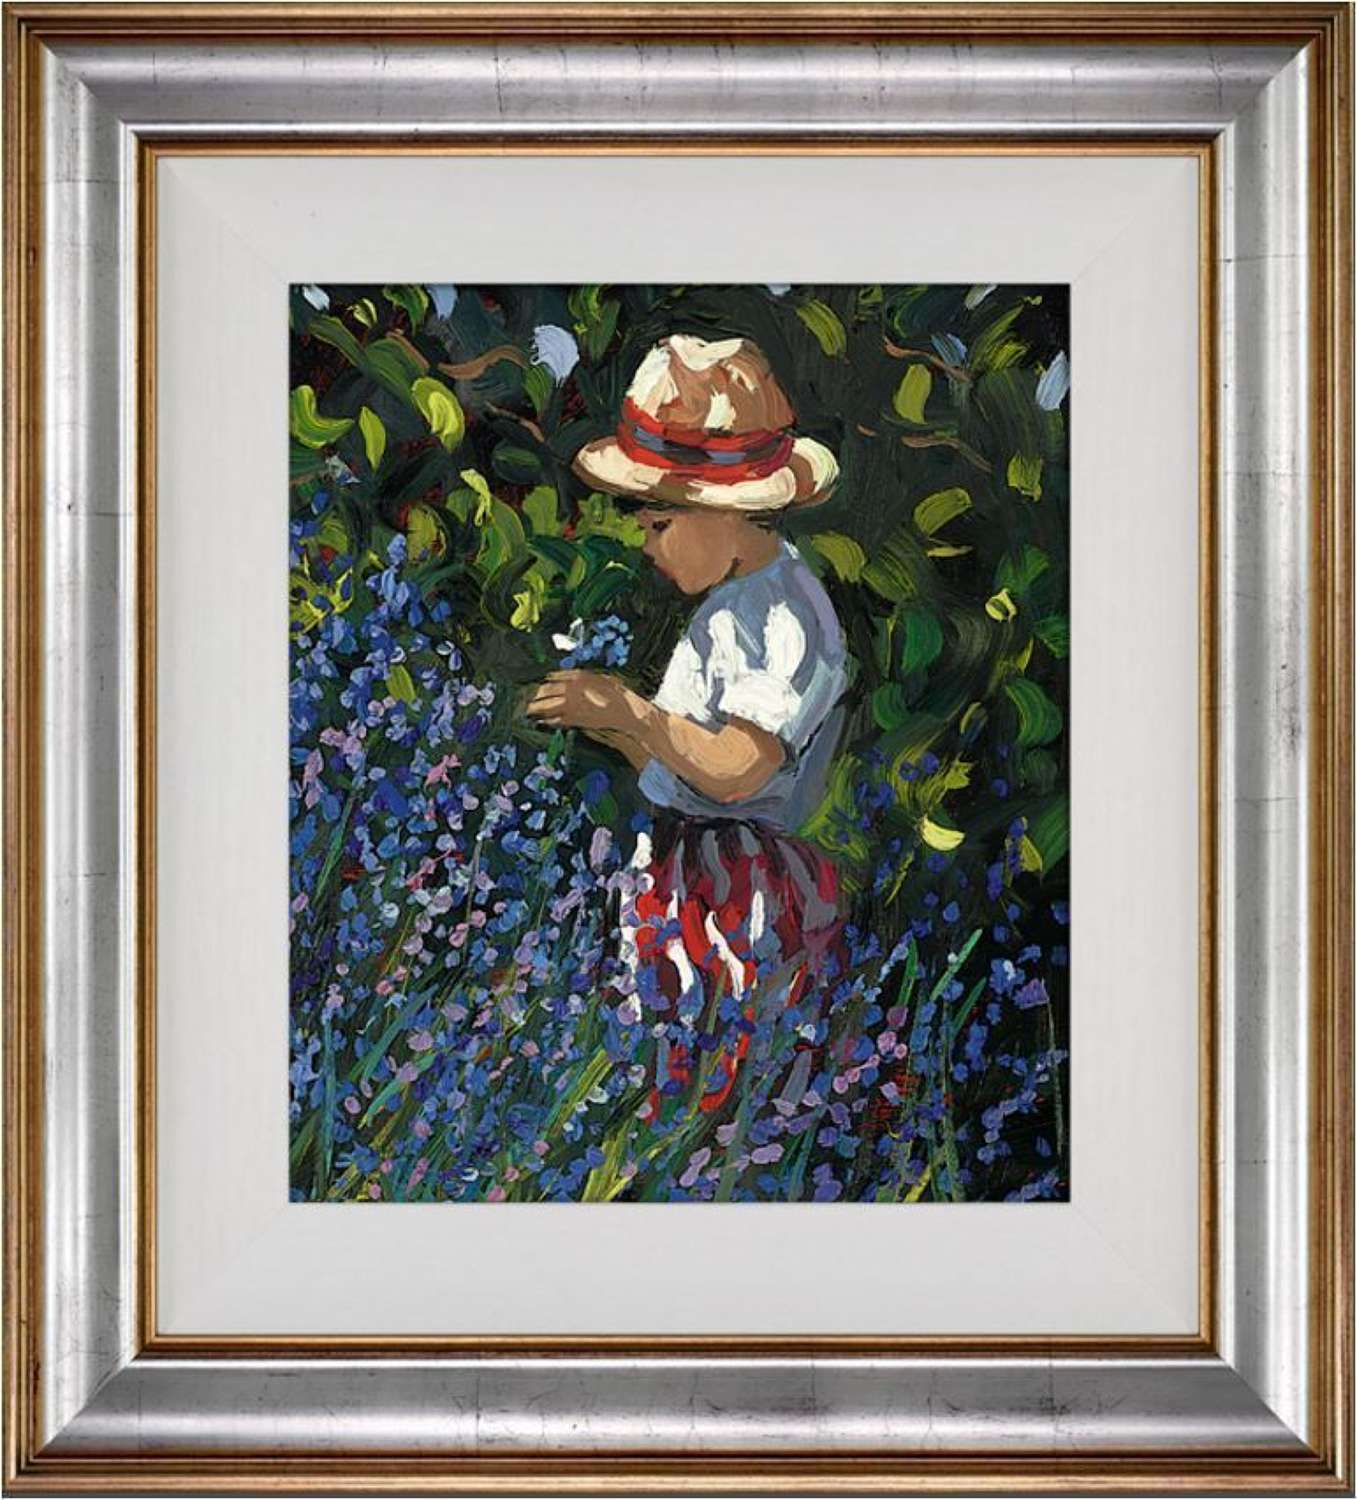 Picking Bluebells - Framed Canvas Art Print  Sherree Valentine Daine